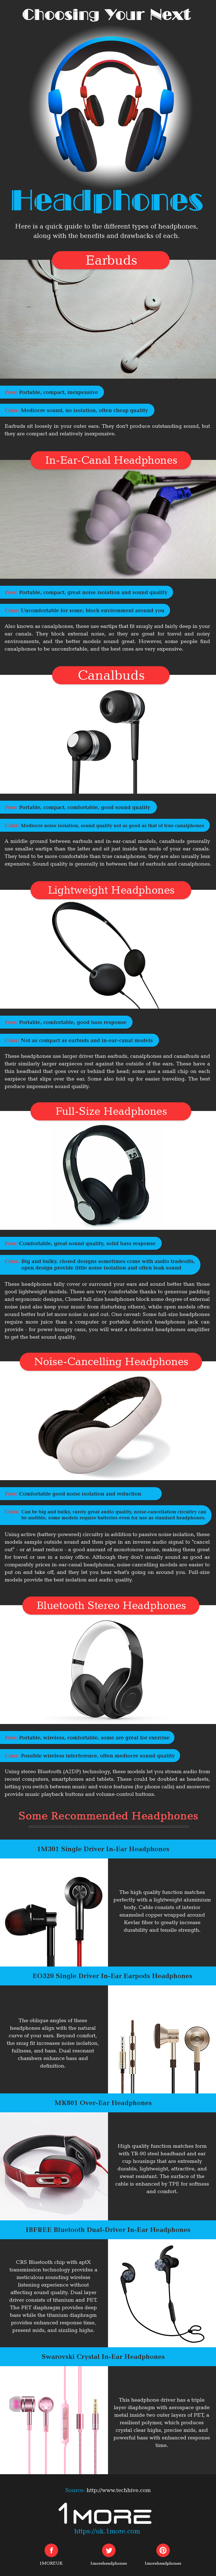 Choosing Your Next Headphones